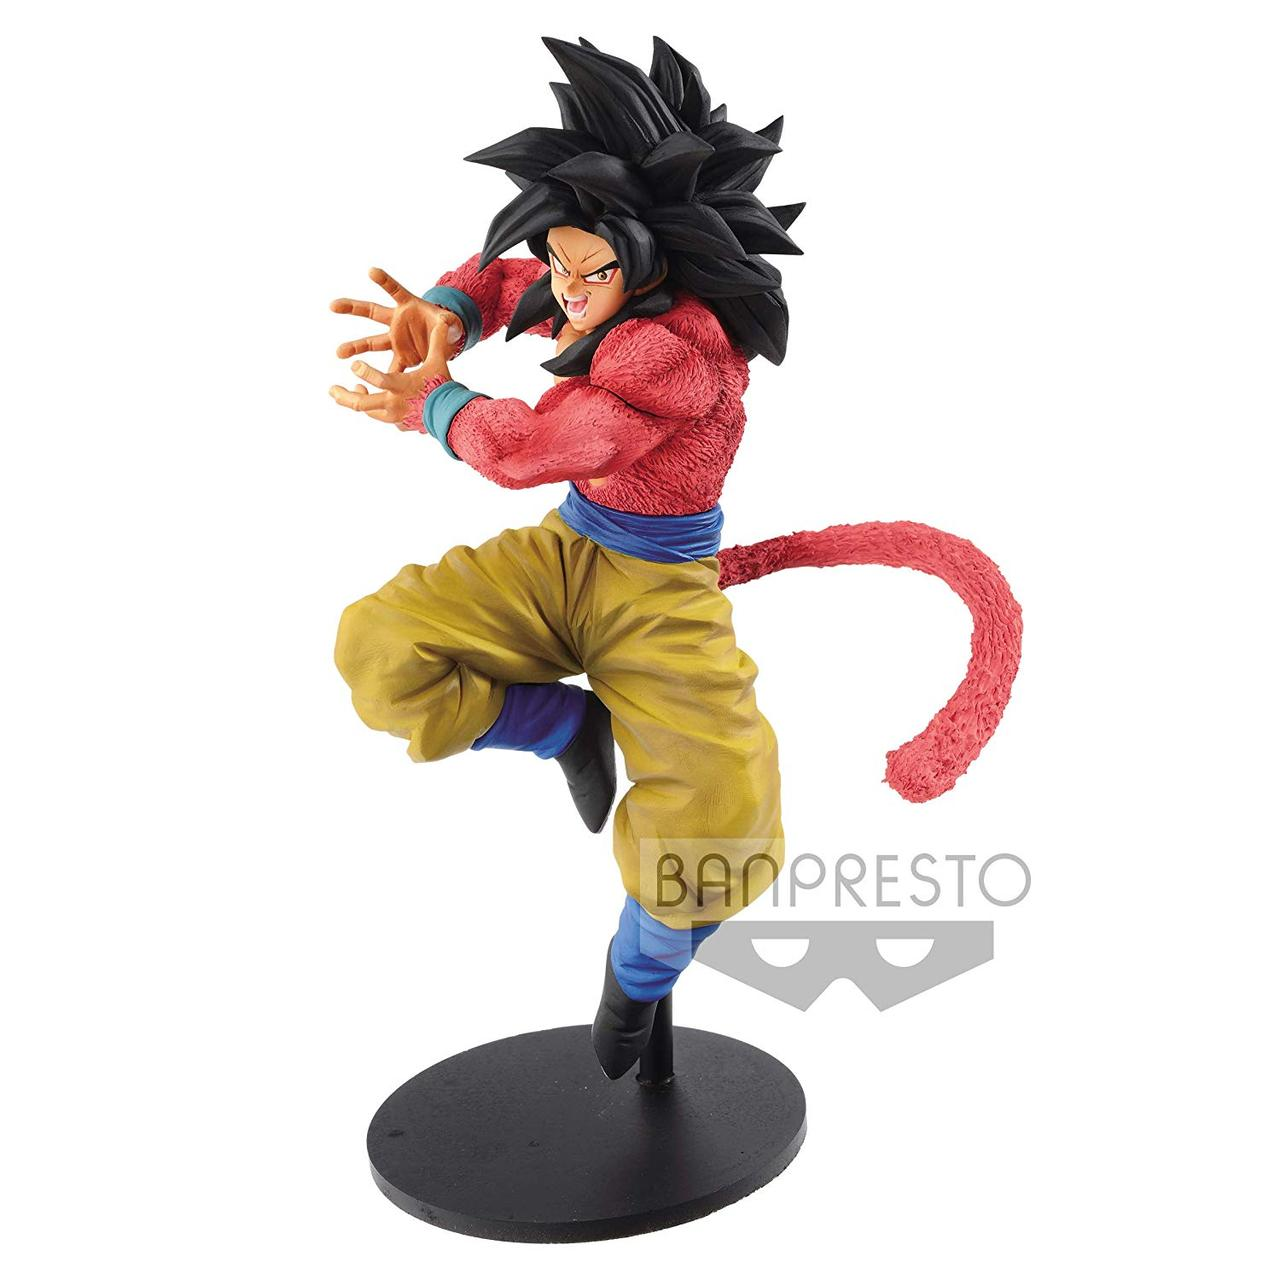 Banpresto 82517P - Dragon Ball GT - Сон Гоку Фигурка х10 Камехамеха